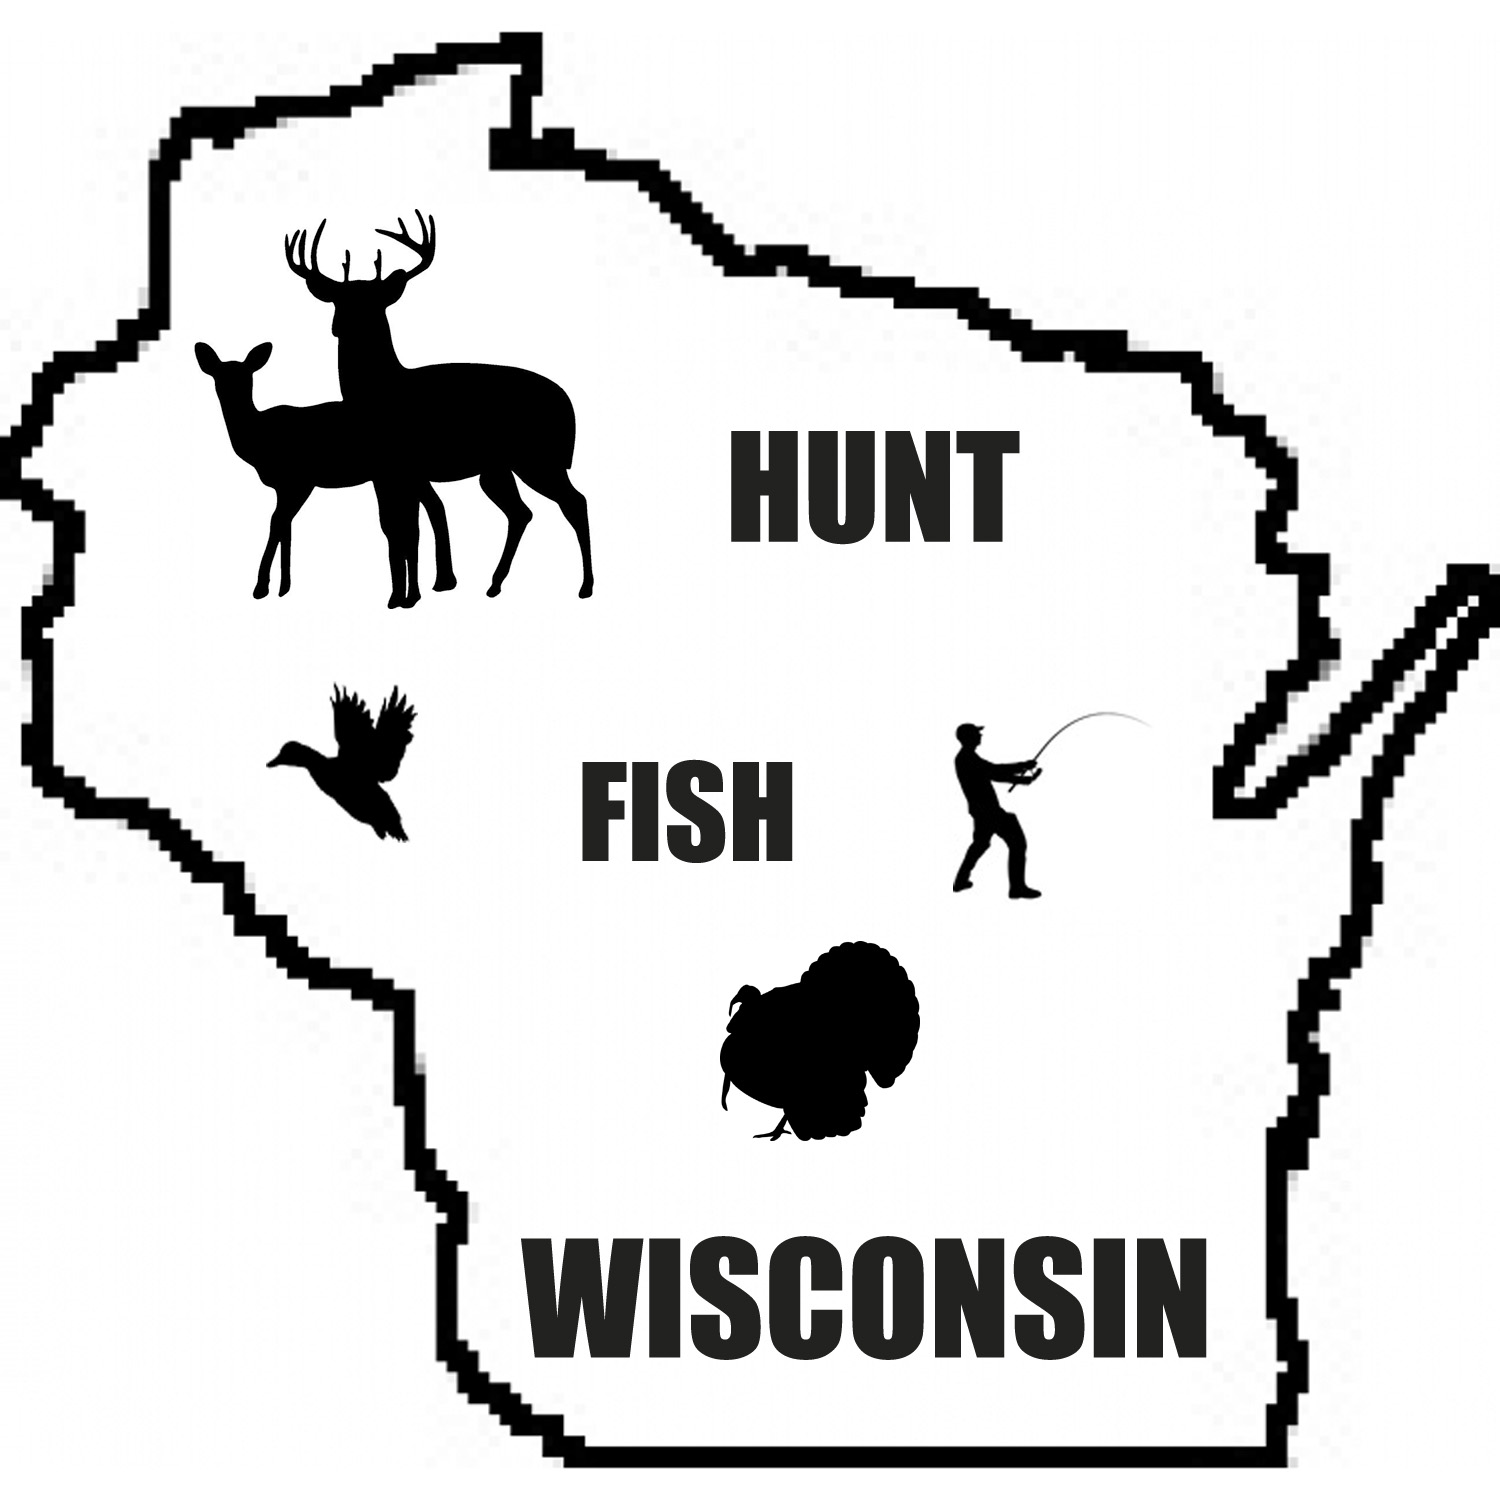 Wisconsin fall outdoors clipart clipart library stock Hunt Fish Wisconsin | Listen via Stitcher for Podcasts clipart library stock